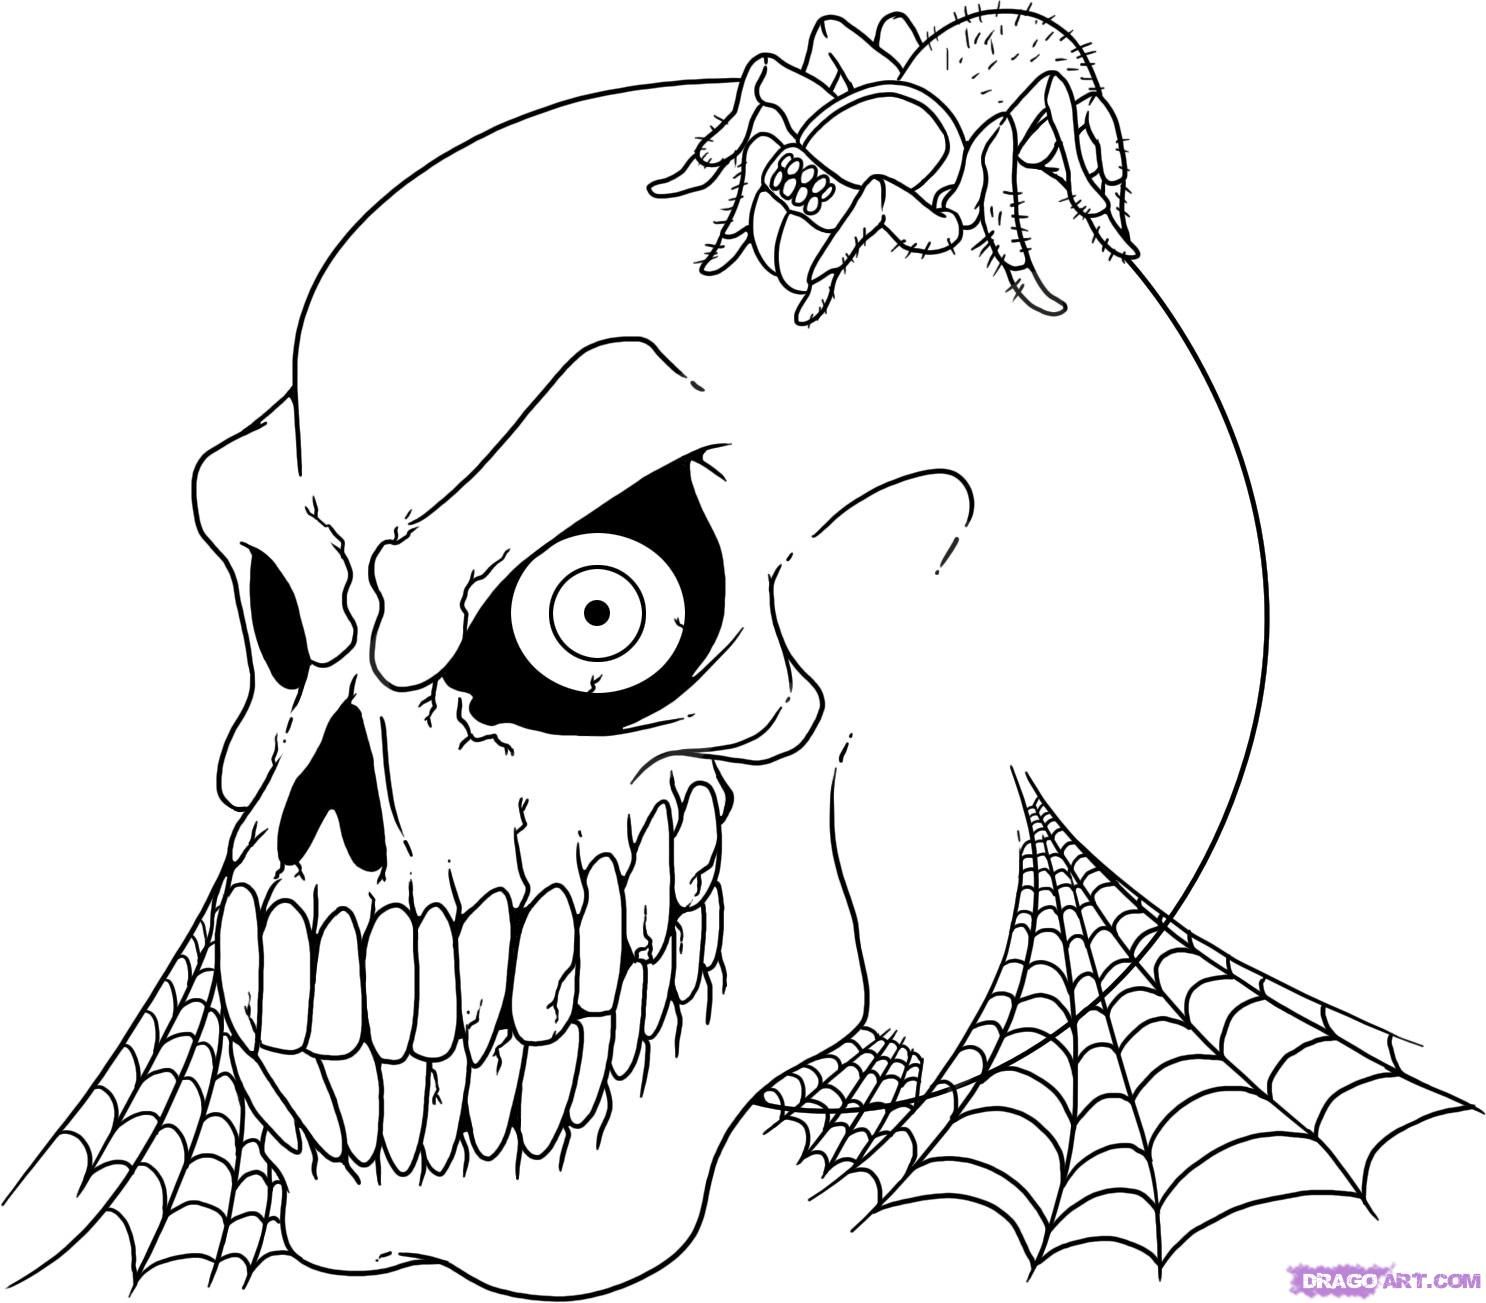 Halloween Coloring Pages Halloween Skeleton Coloring Pages For Kids Jpg Skull Coloring Pages Halloween Coloring Pages Halloween Coloring Pages Printable